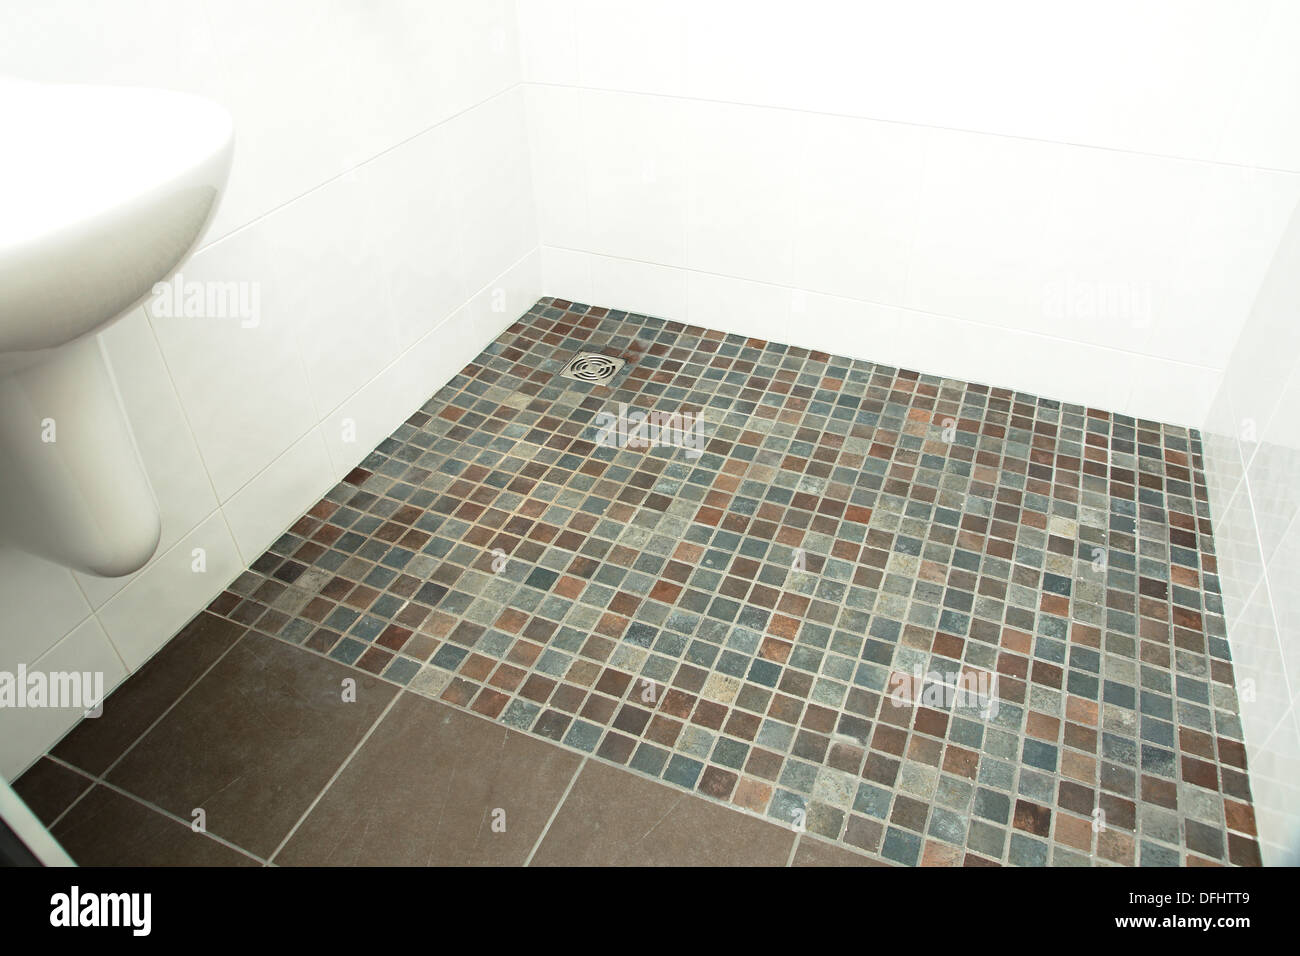 A specially adapted wet room shower bathroom with non slip tiles